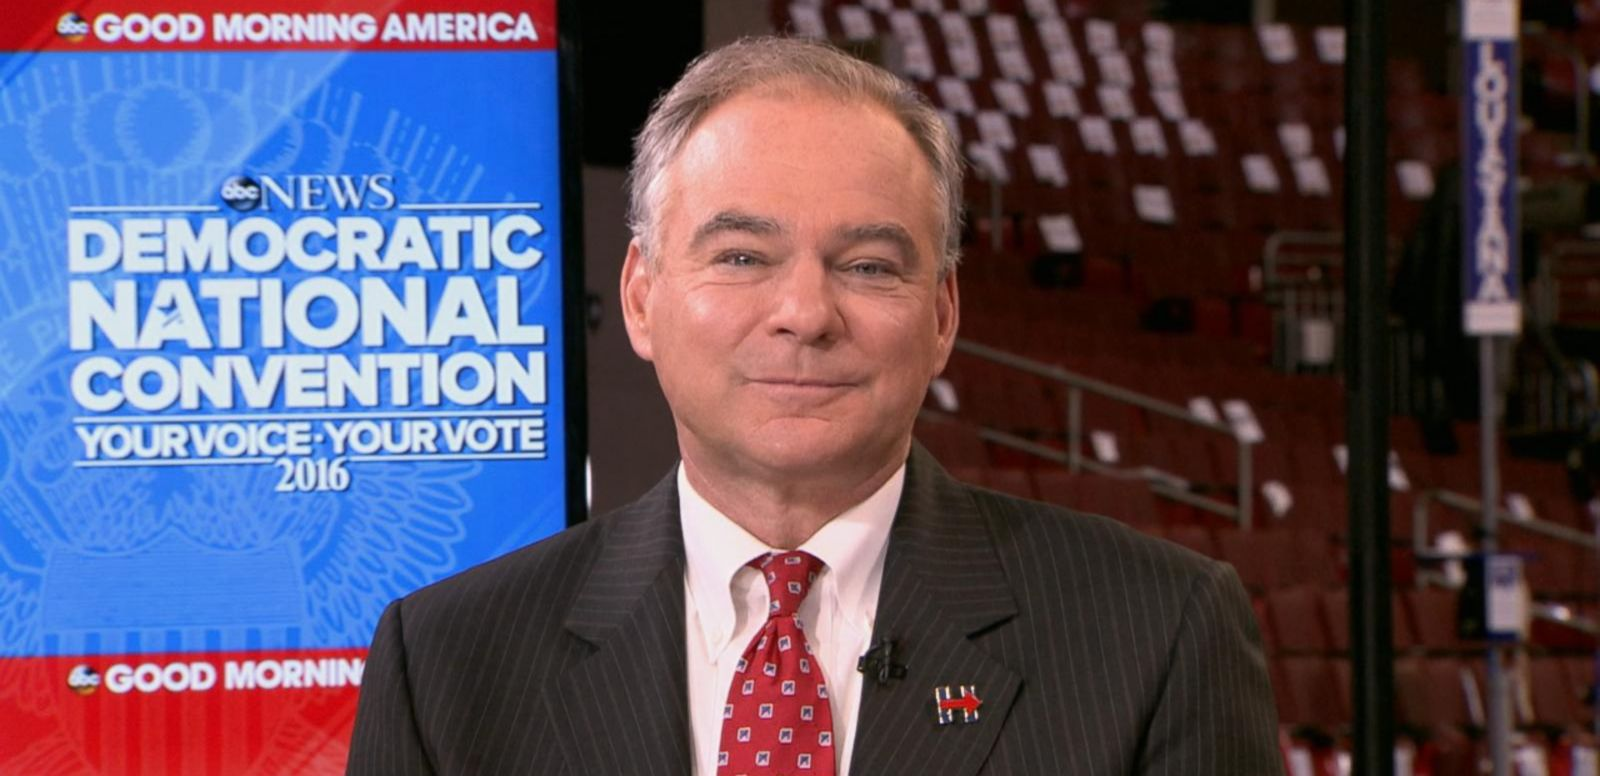 VIDEO: Tim Kaine Reacts to DNC Speech, Vice Presidential Nomination